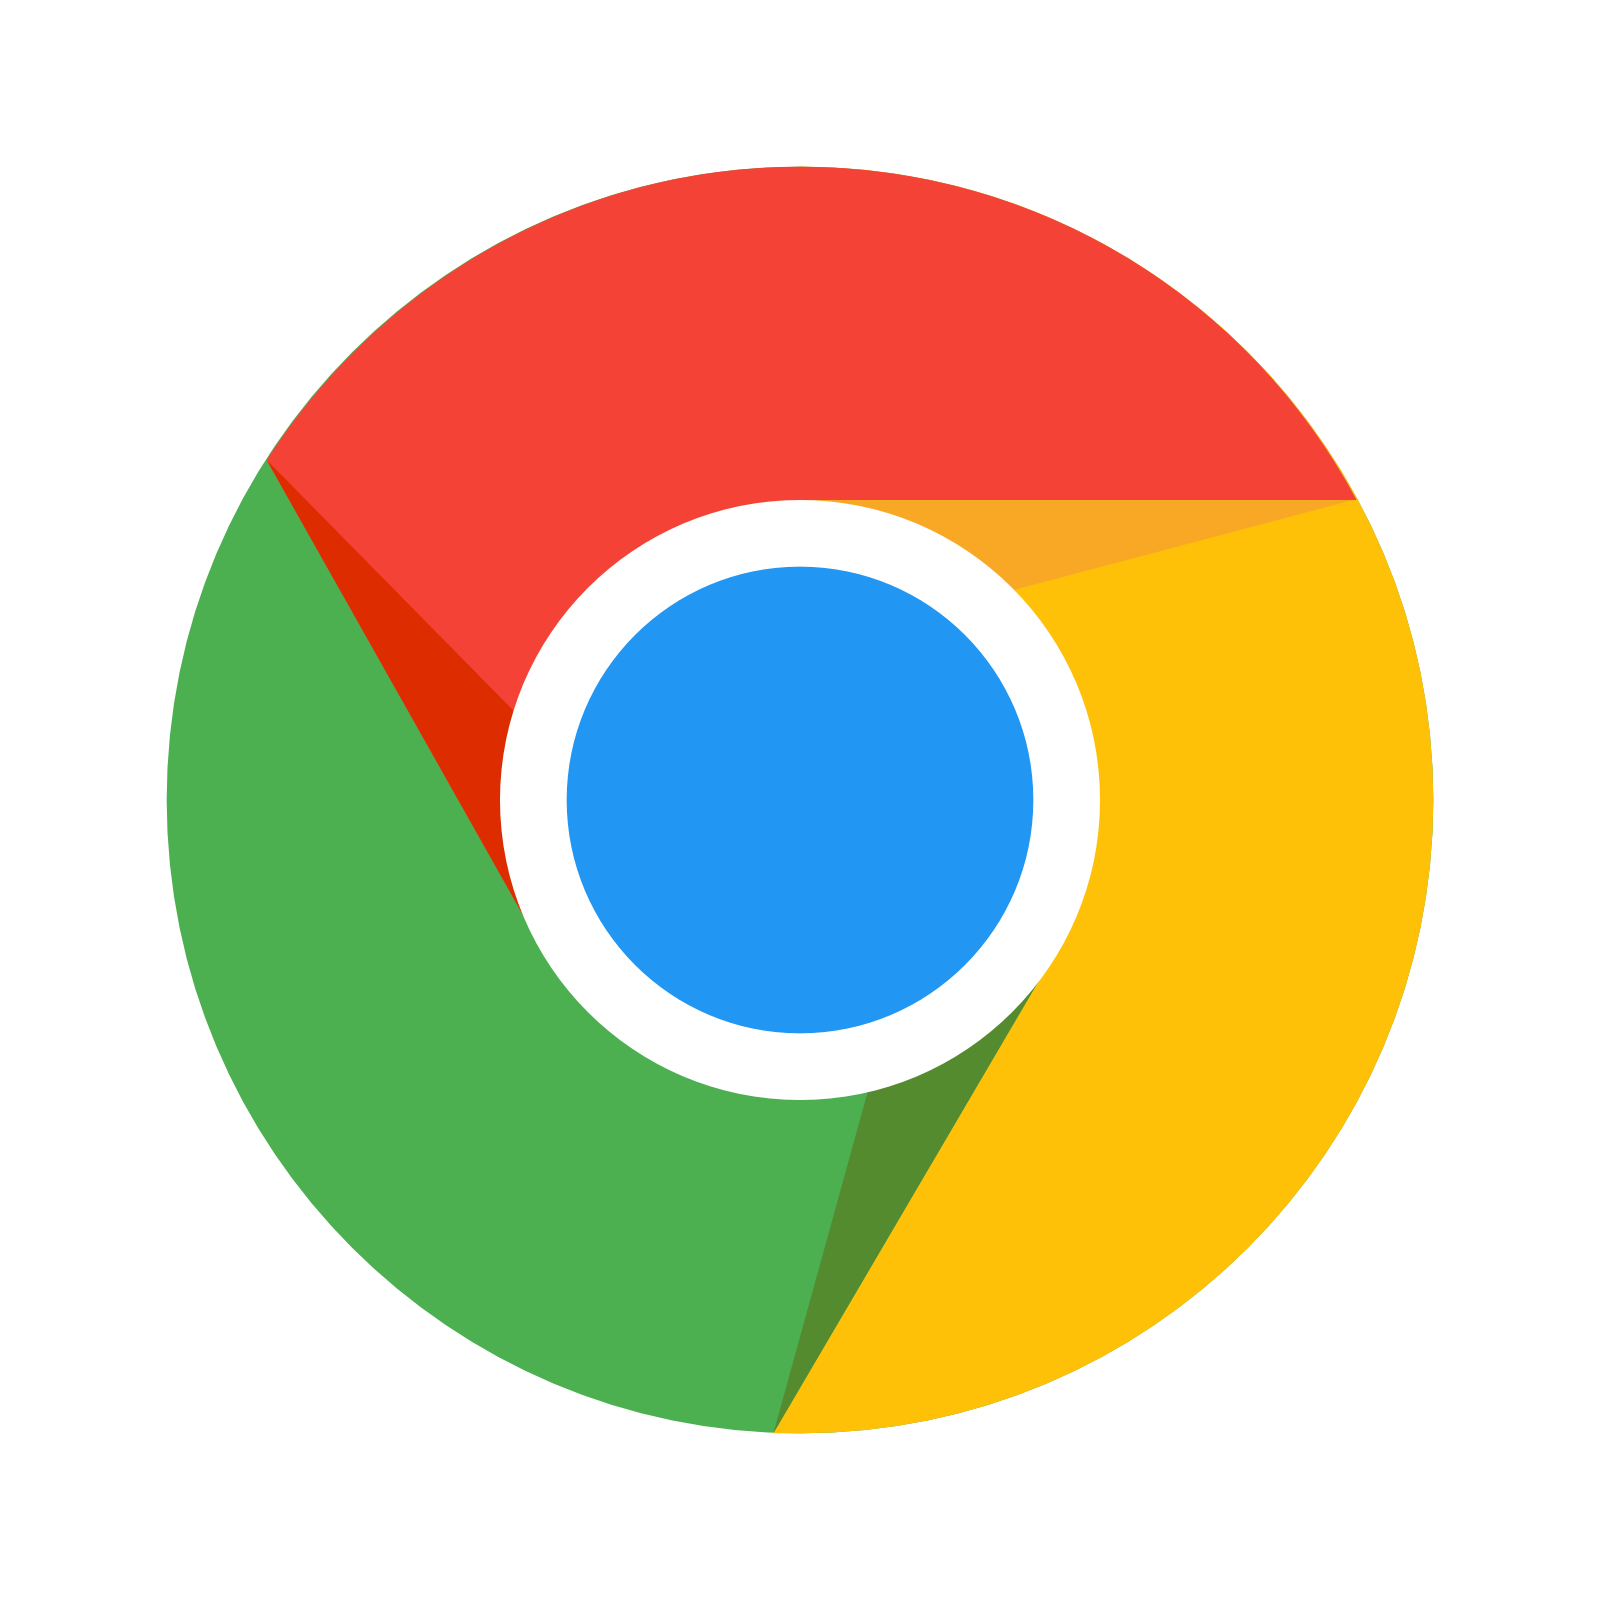 Google to roll out native ad-blocking in Chrome browser